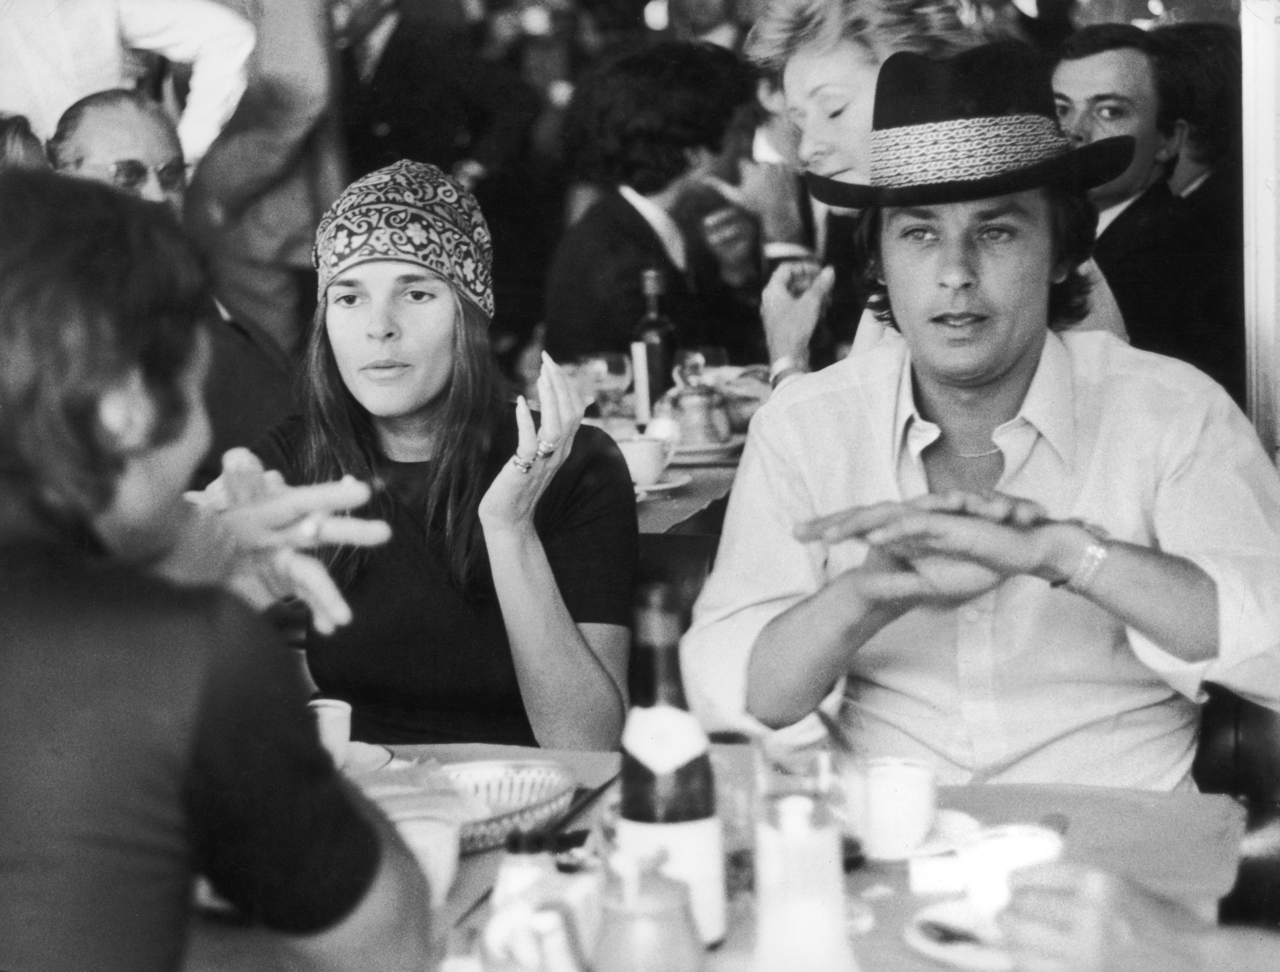 Ali MacGraw and Alain Delon